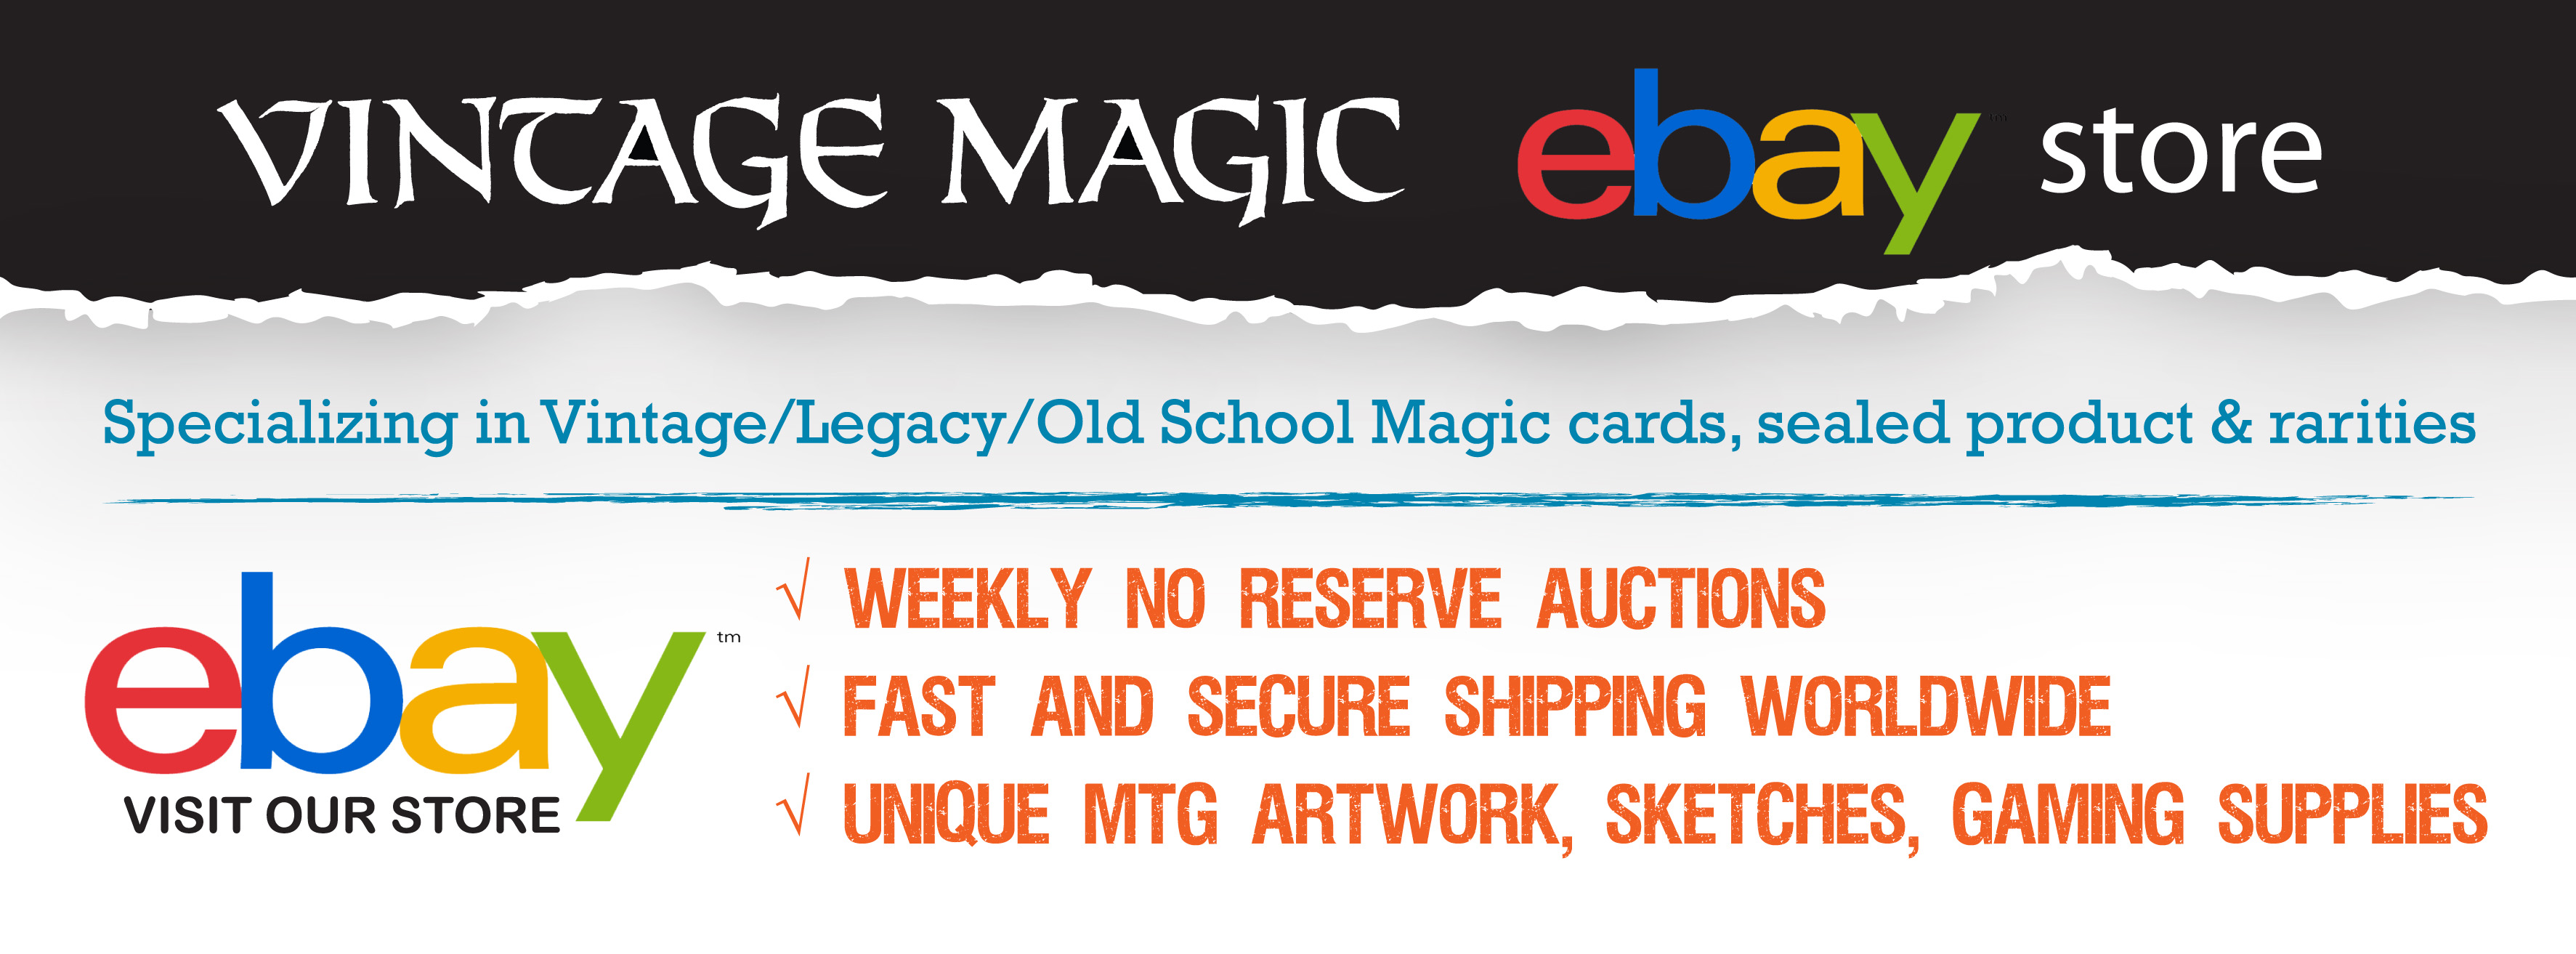 Vintage Magic eBay Store